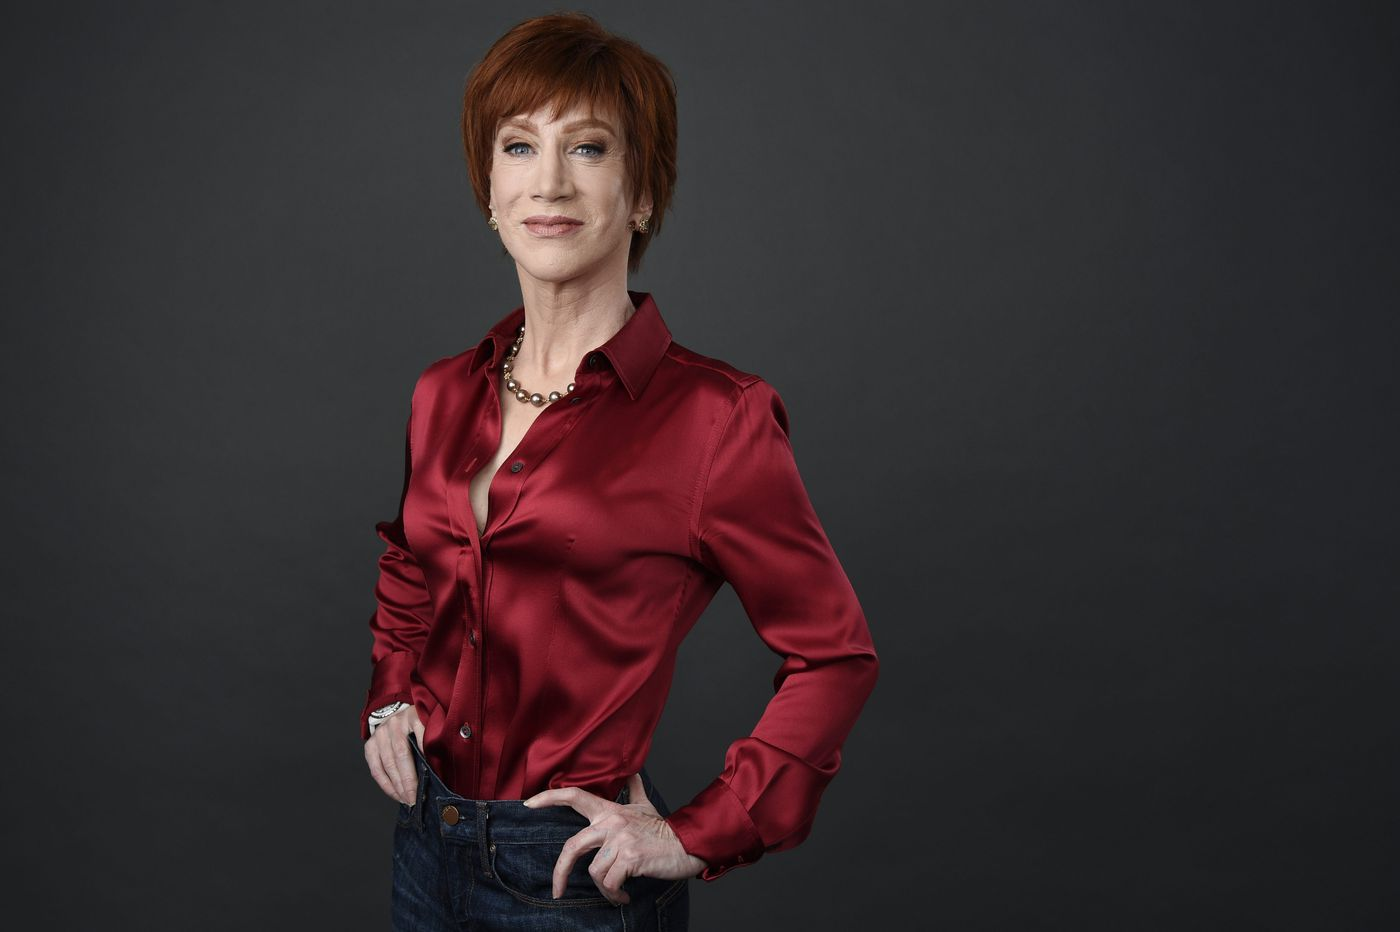 Kathy Griffin slams Kevin Hart over avoiding Trump material onstage